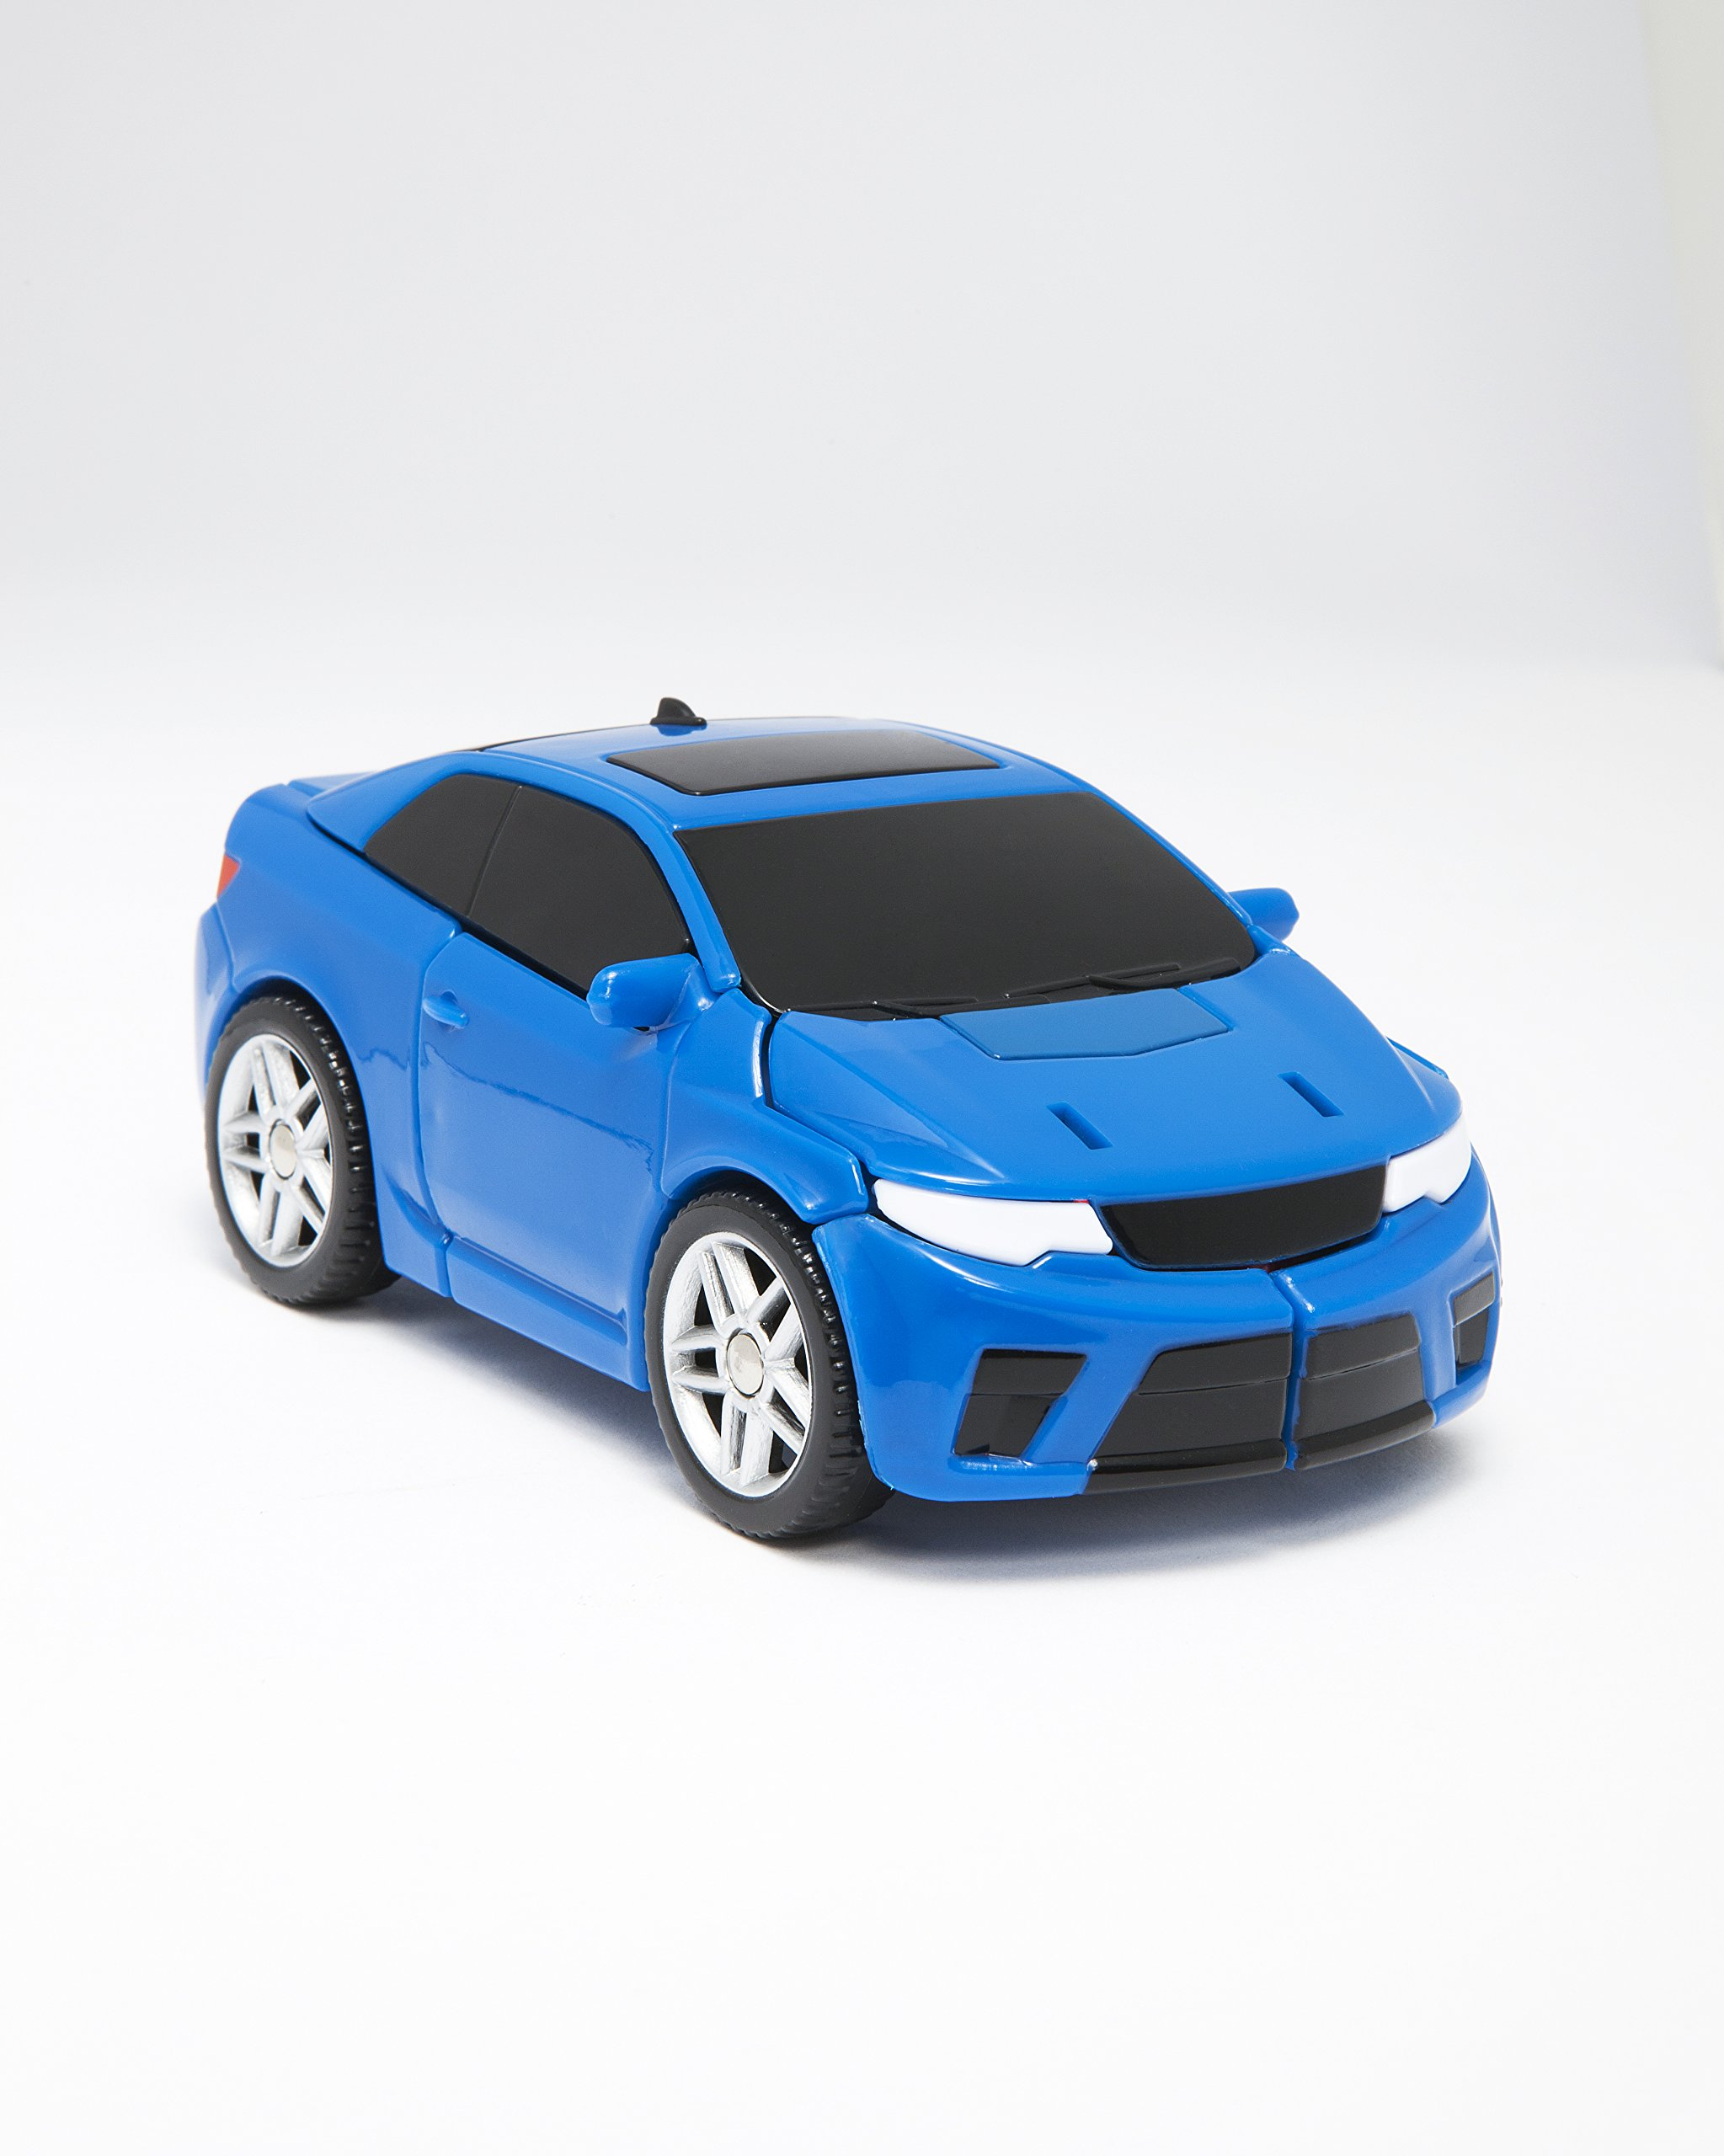 Tobot Youngtoys Y Transforming Robot Car to Robot Animation Character by Tobot (Image #3)